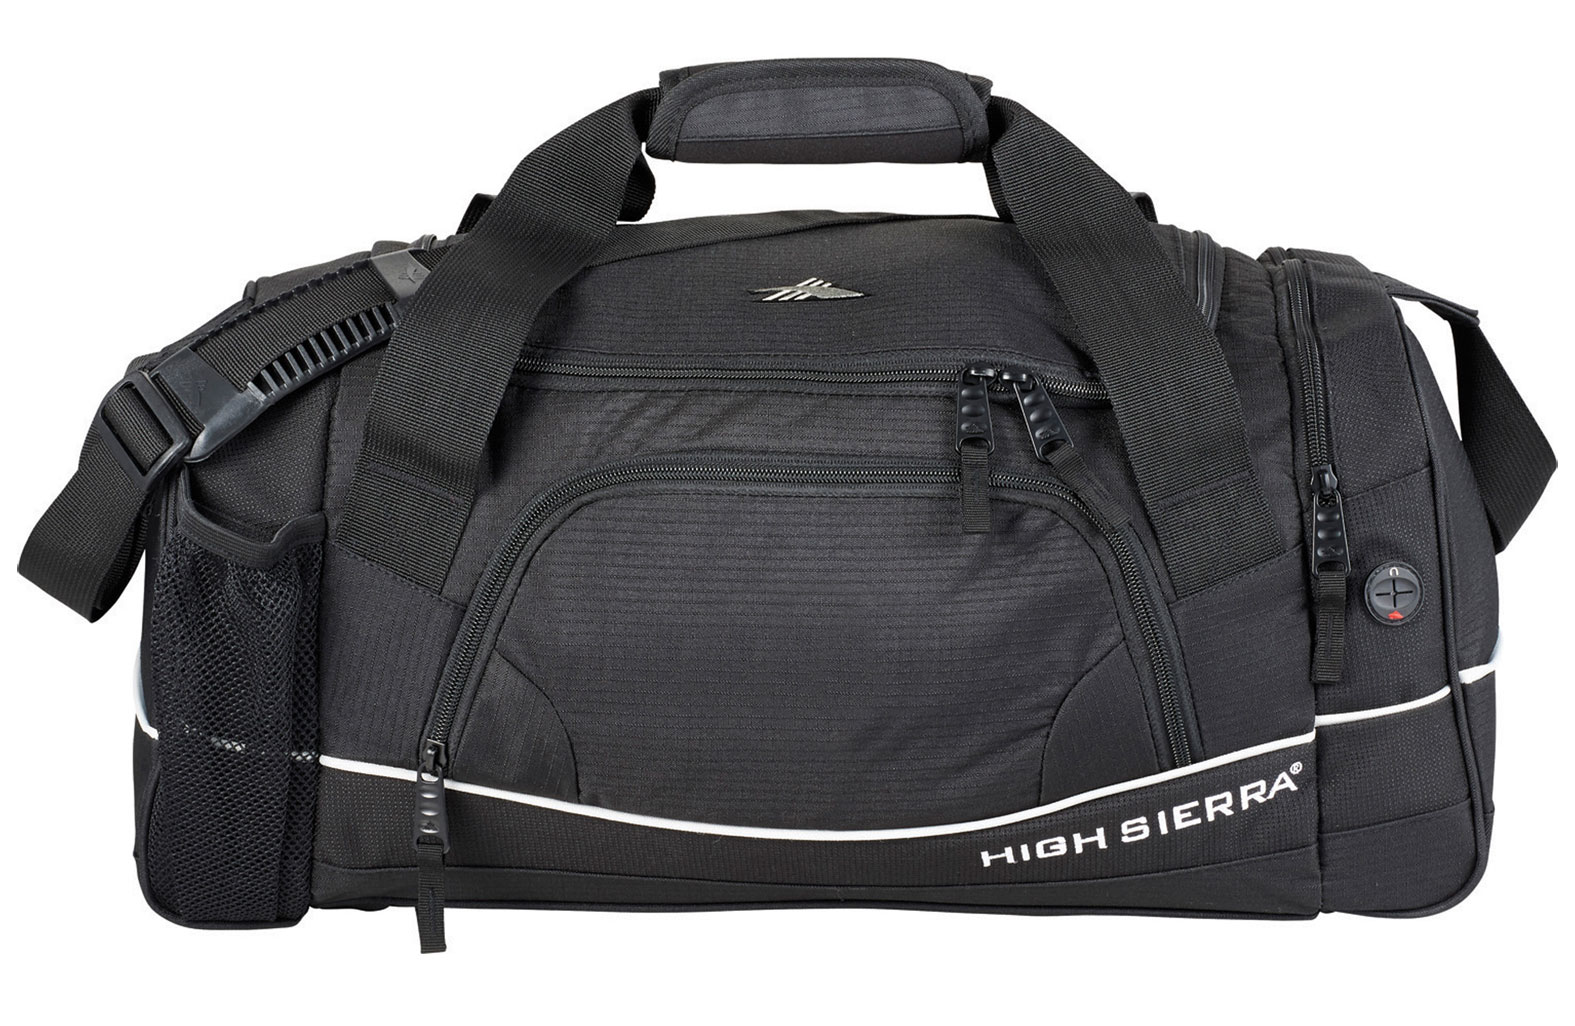 High Sierra 22 Bubba Duffle Bag